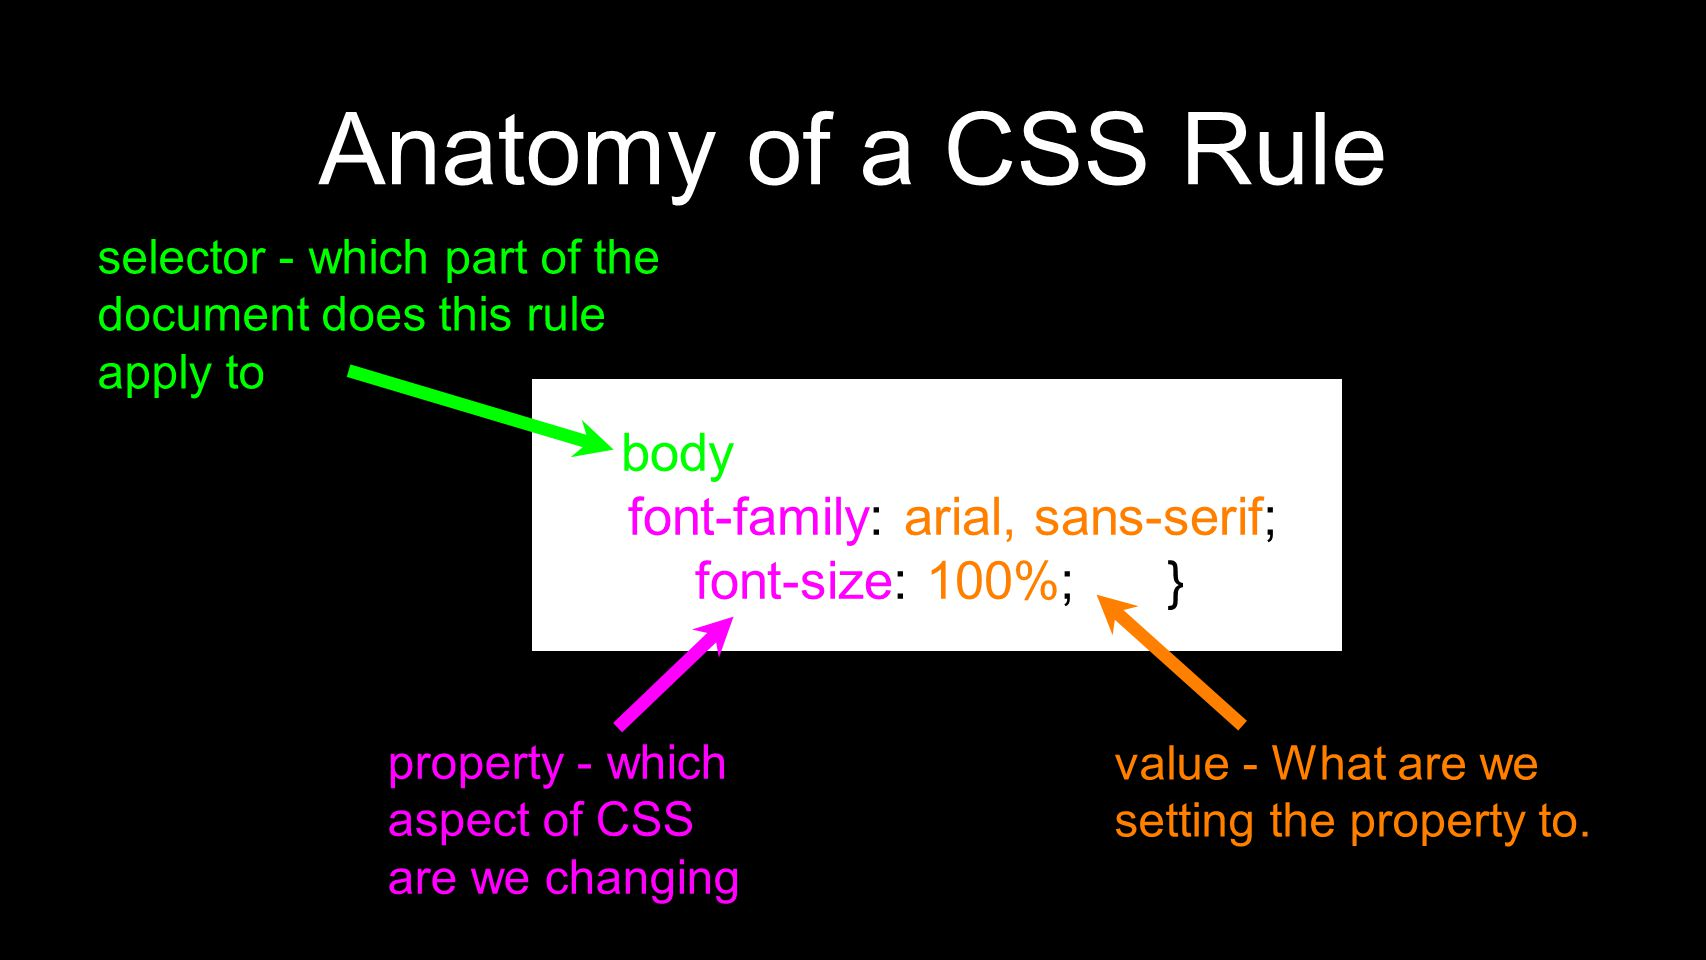 Anatomy of a CSS Rule body font-family: arial, sans-serif; font-size: 100%; } property - which aspect of CSS are we changing selector - which part of the document does this rule apply to value - What are we setting the property to.